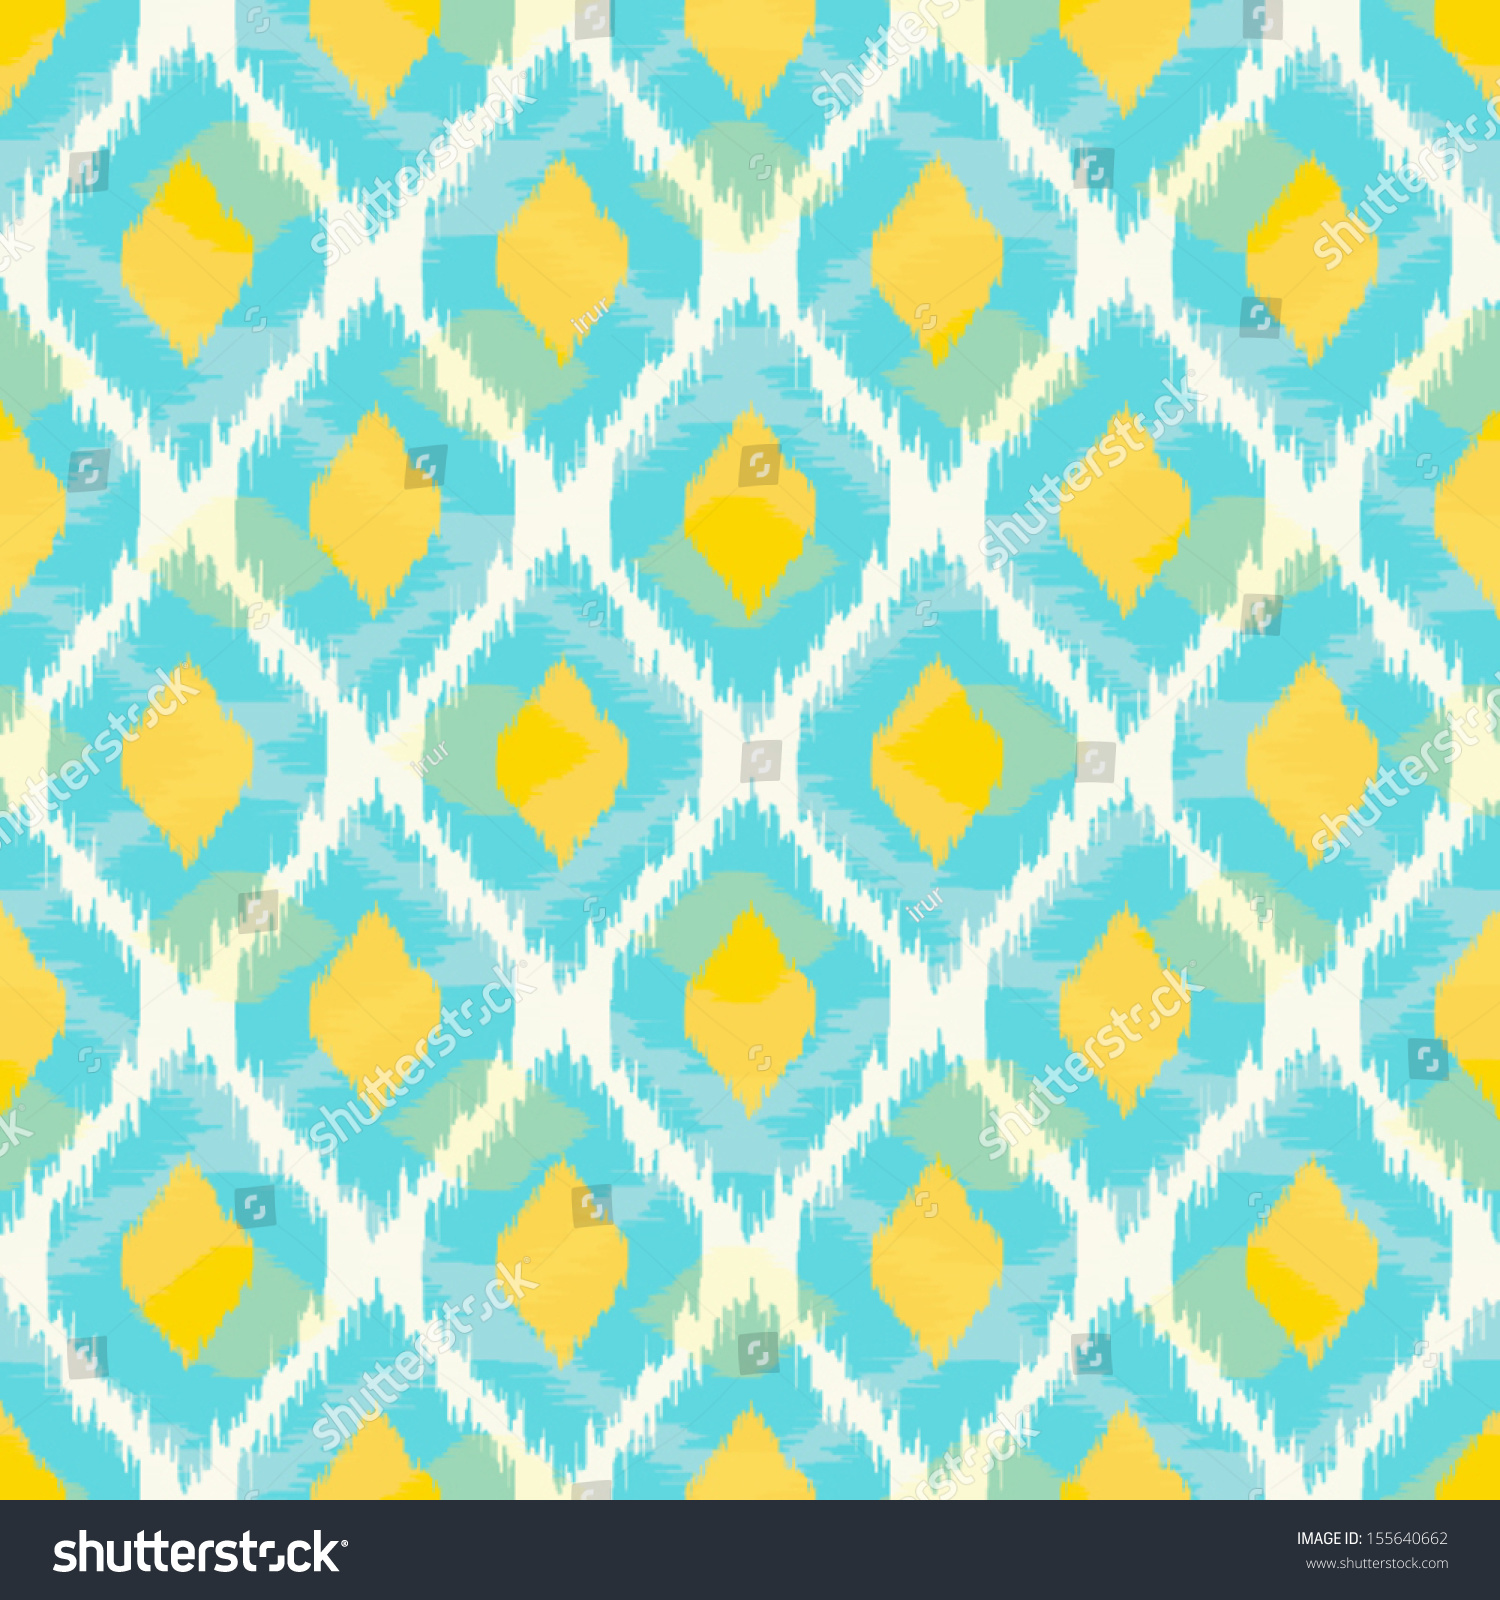 Cute Tribal Patterns Wallpaper Modern Tribal Ikat Blue Yellow Fashion Stock Vector